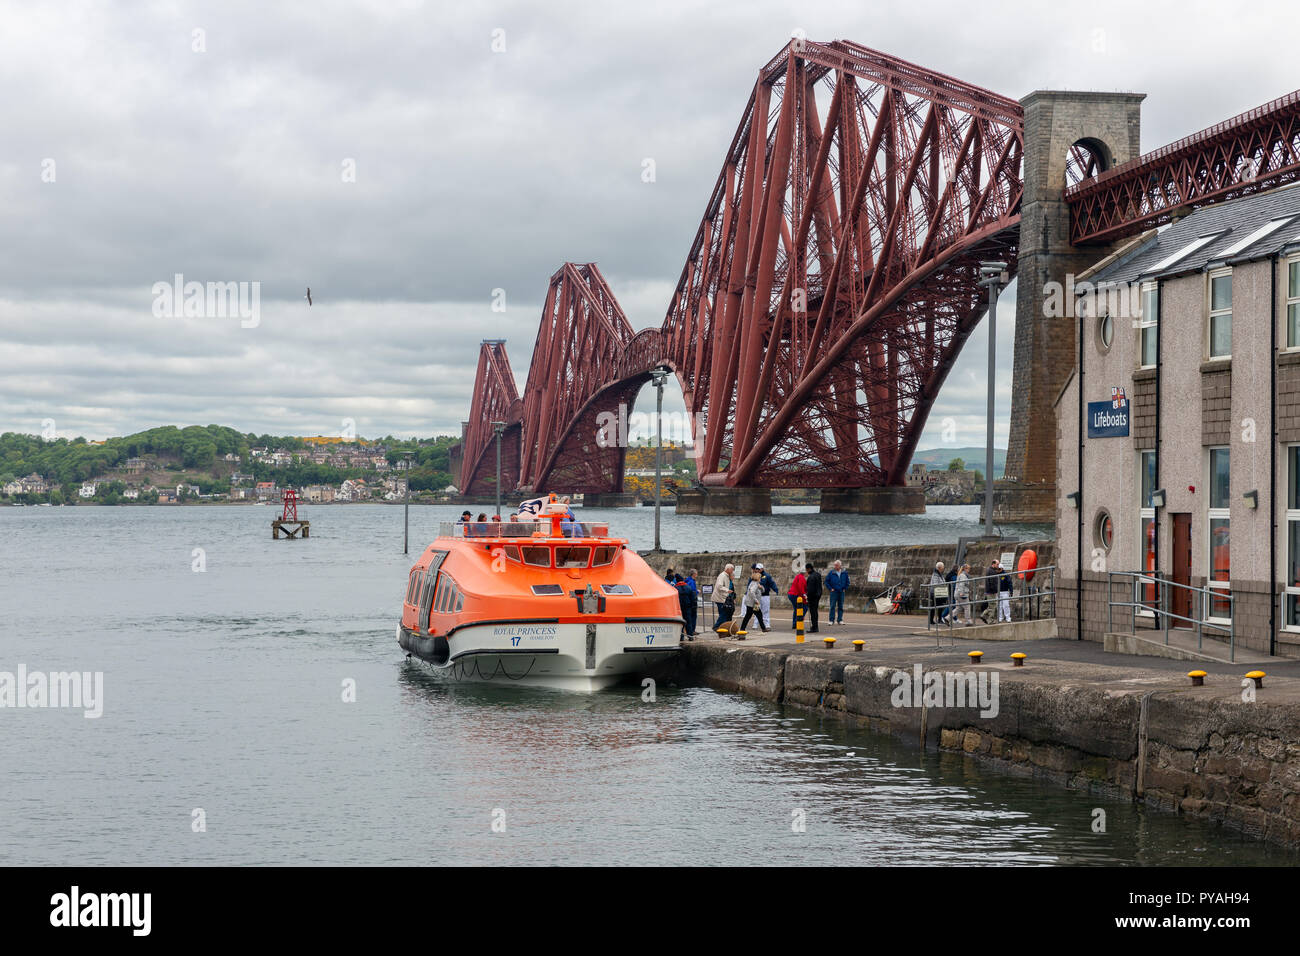 Forth Bridge in Scotland with tender cruise ship debarking passengers Stock Photo